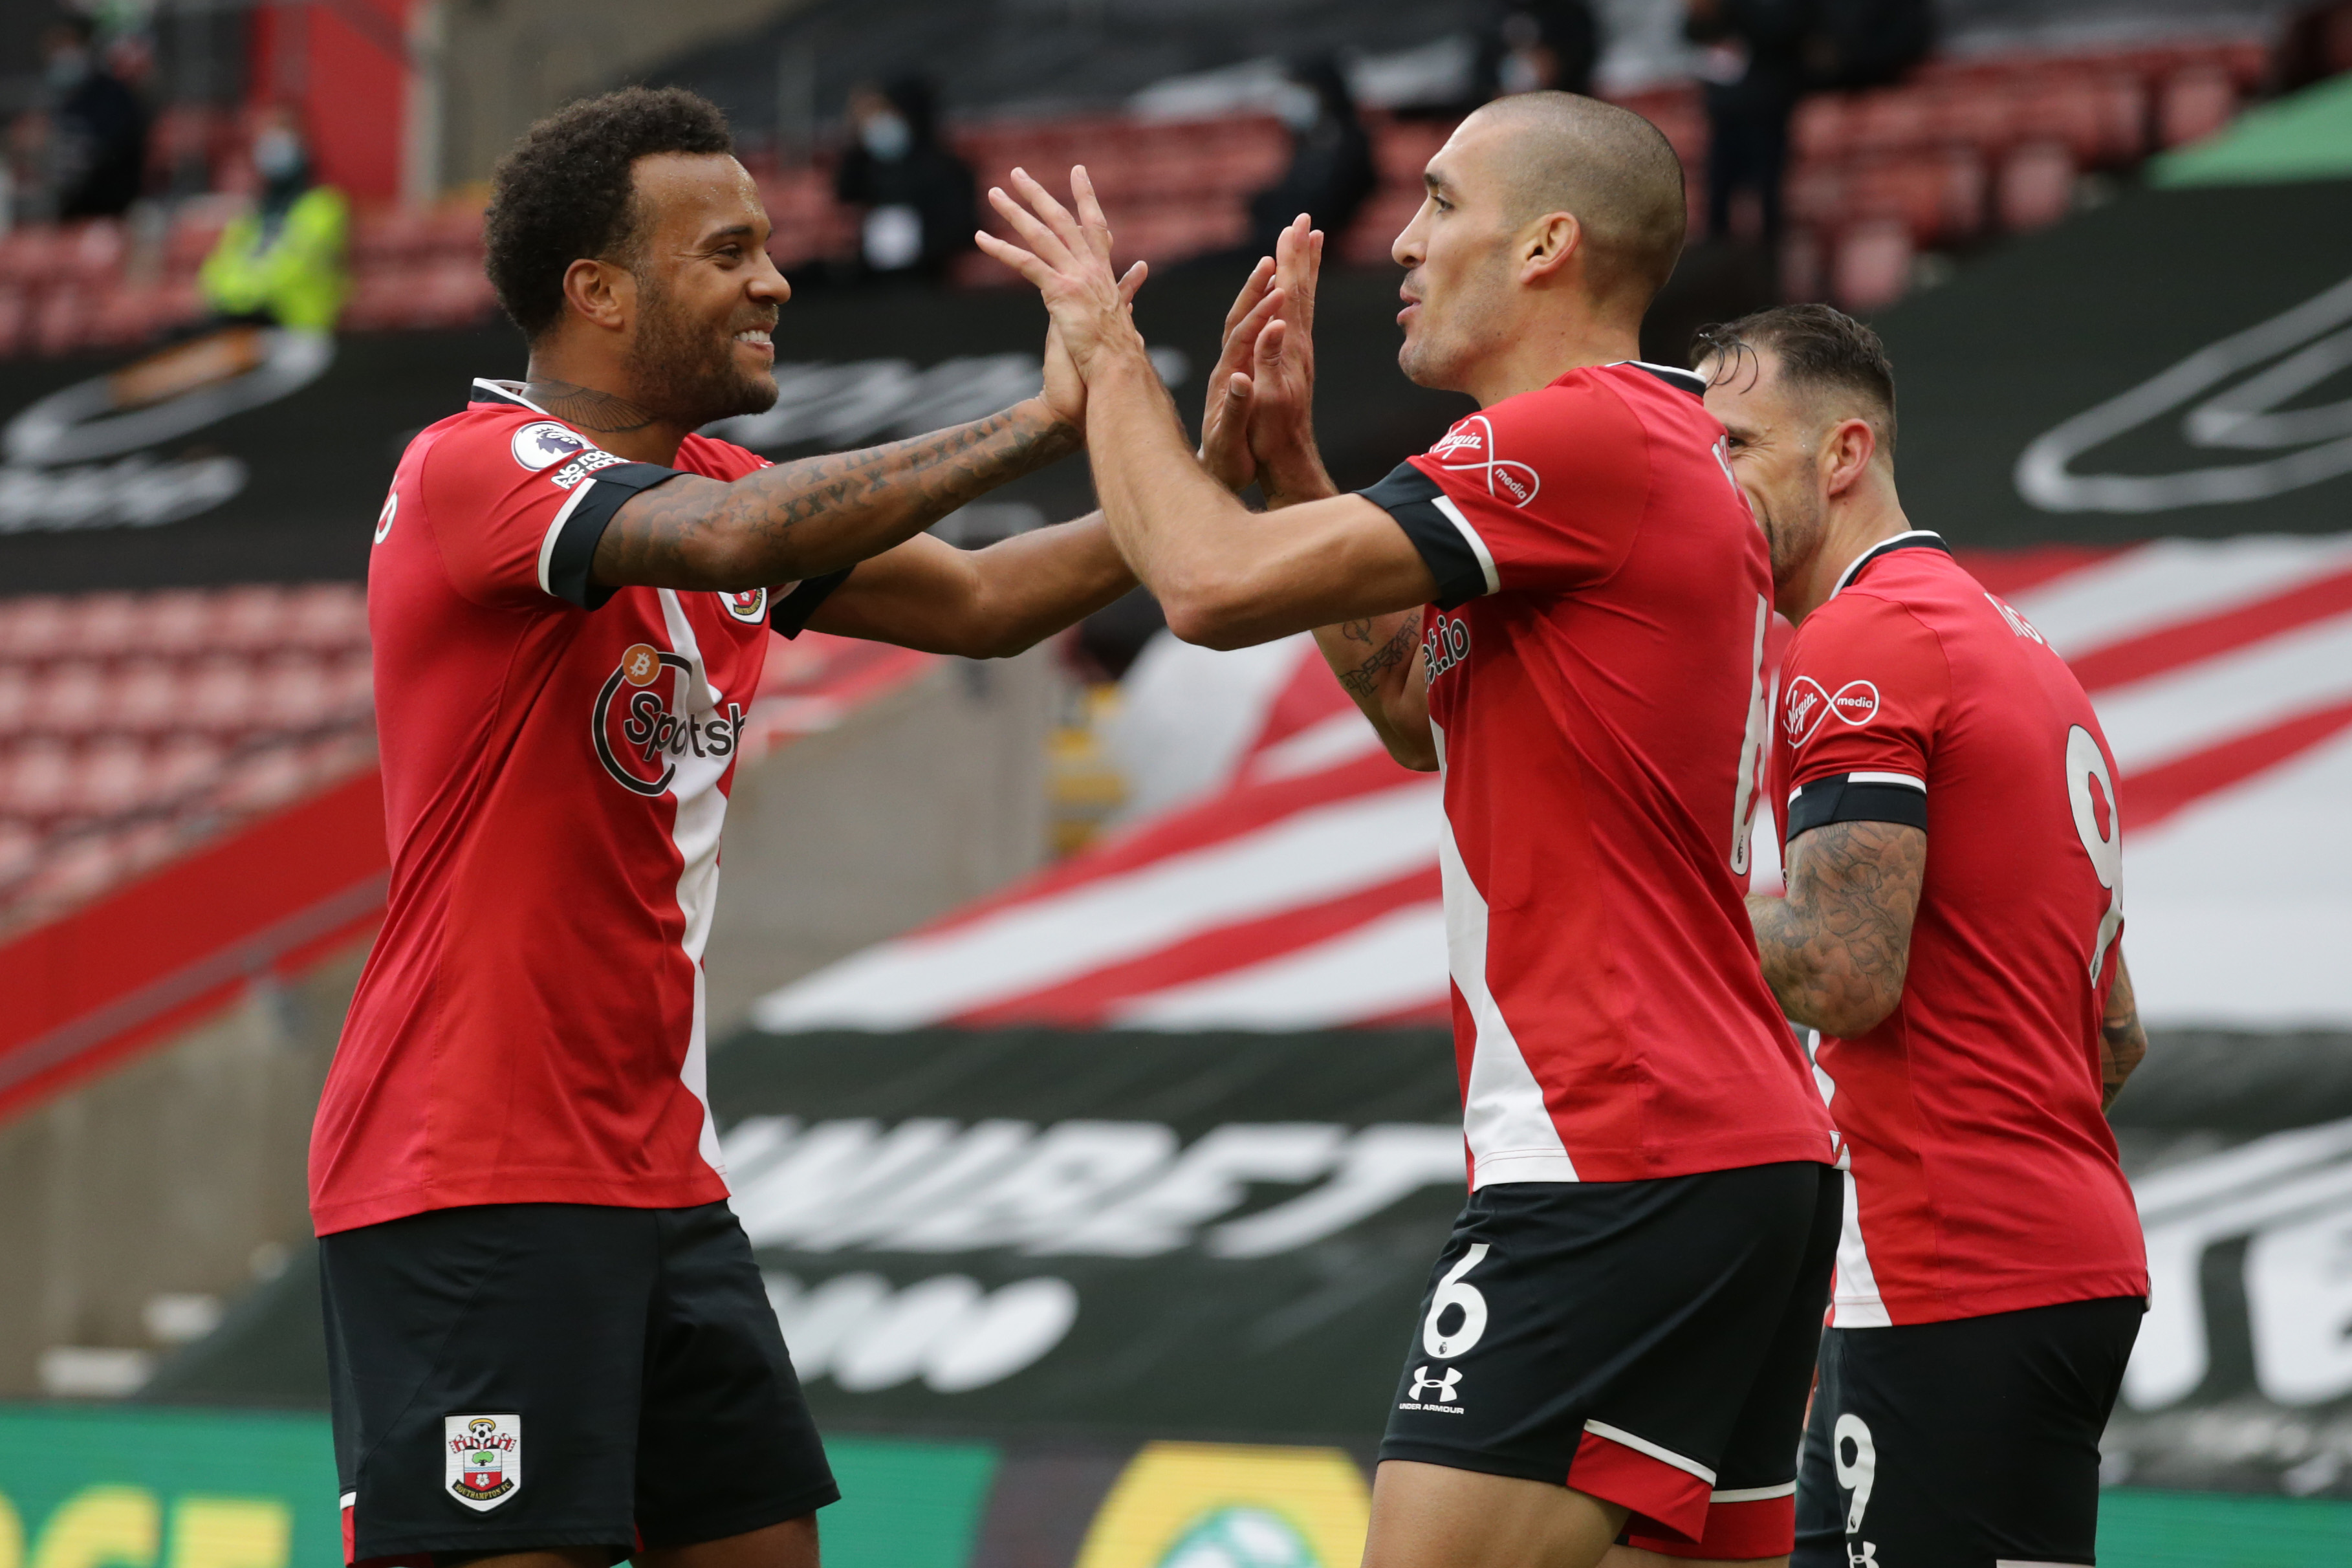 Oriol Romeu celebrating after scoring for Southampton against West Brom in the Premier League